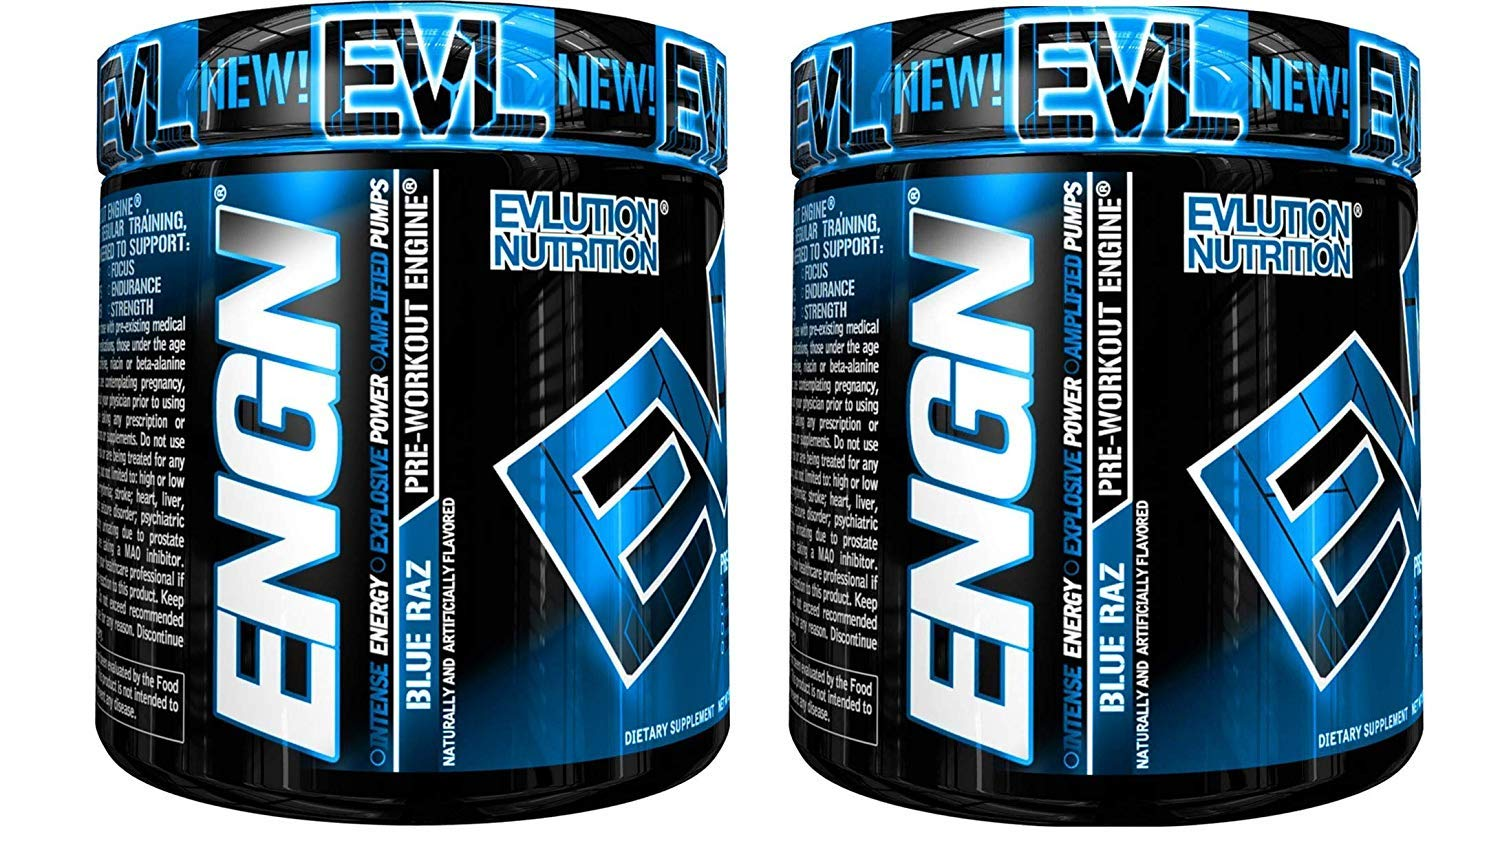 Evlution Nutrition ENGN Pre-Workout, 30 Servings, Intense Pre-Workout Powder for Increased Energy, Power, and Focus (Blue Raz) Pikatropin-Free (2 Container Pack) by Evlution (Image #1)